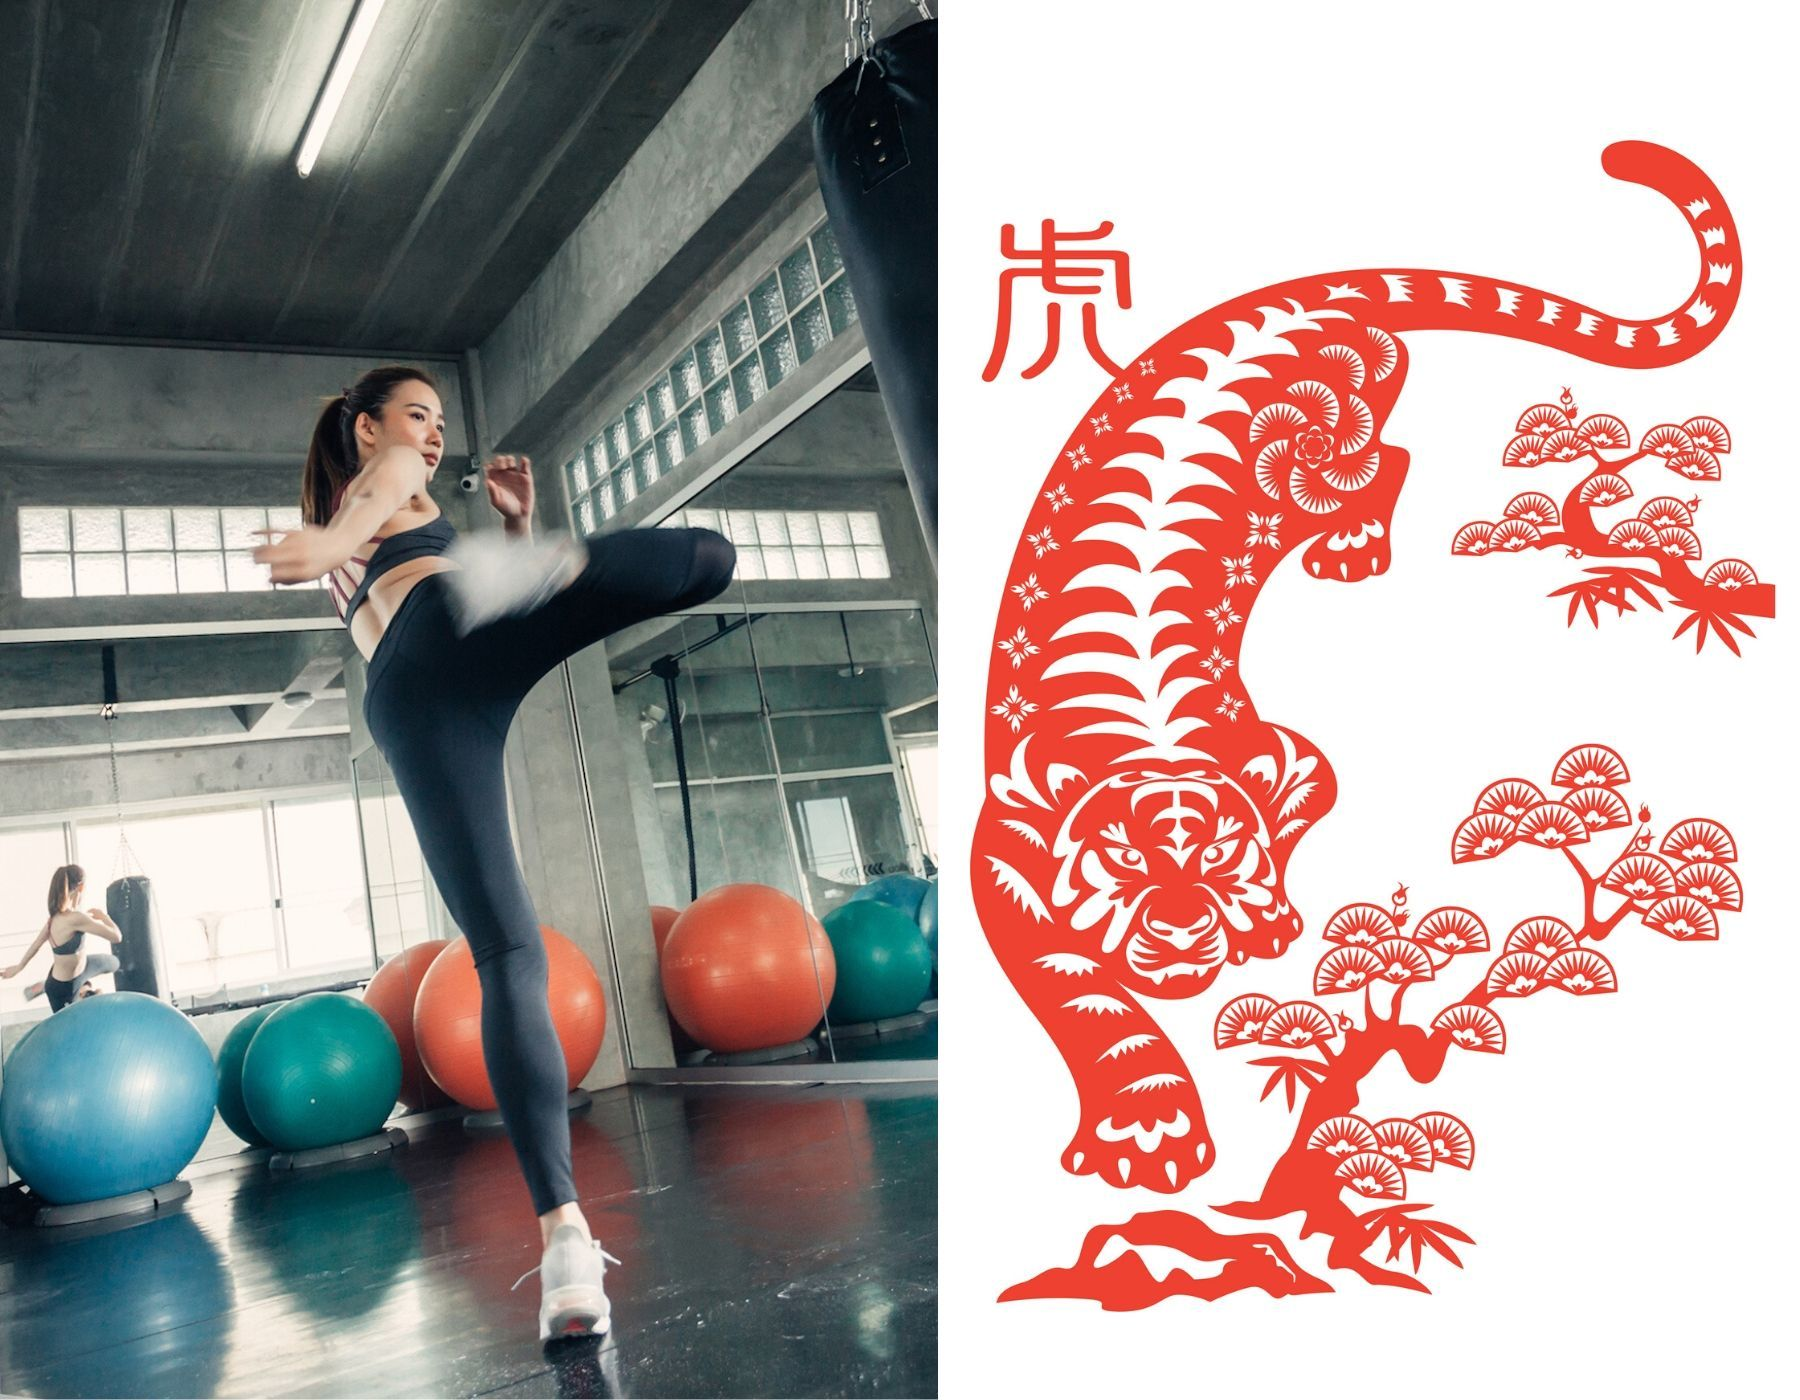 What Kind Of Workout You Should Try In 2020, Based On Your Chinese Zodiac Sign